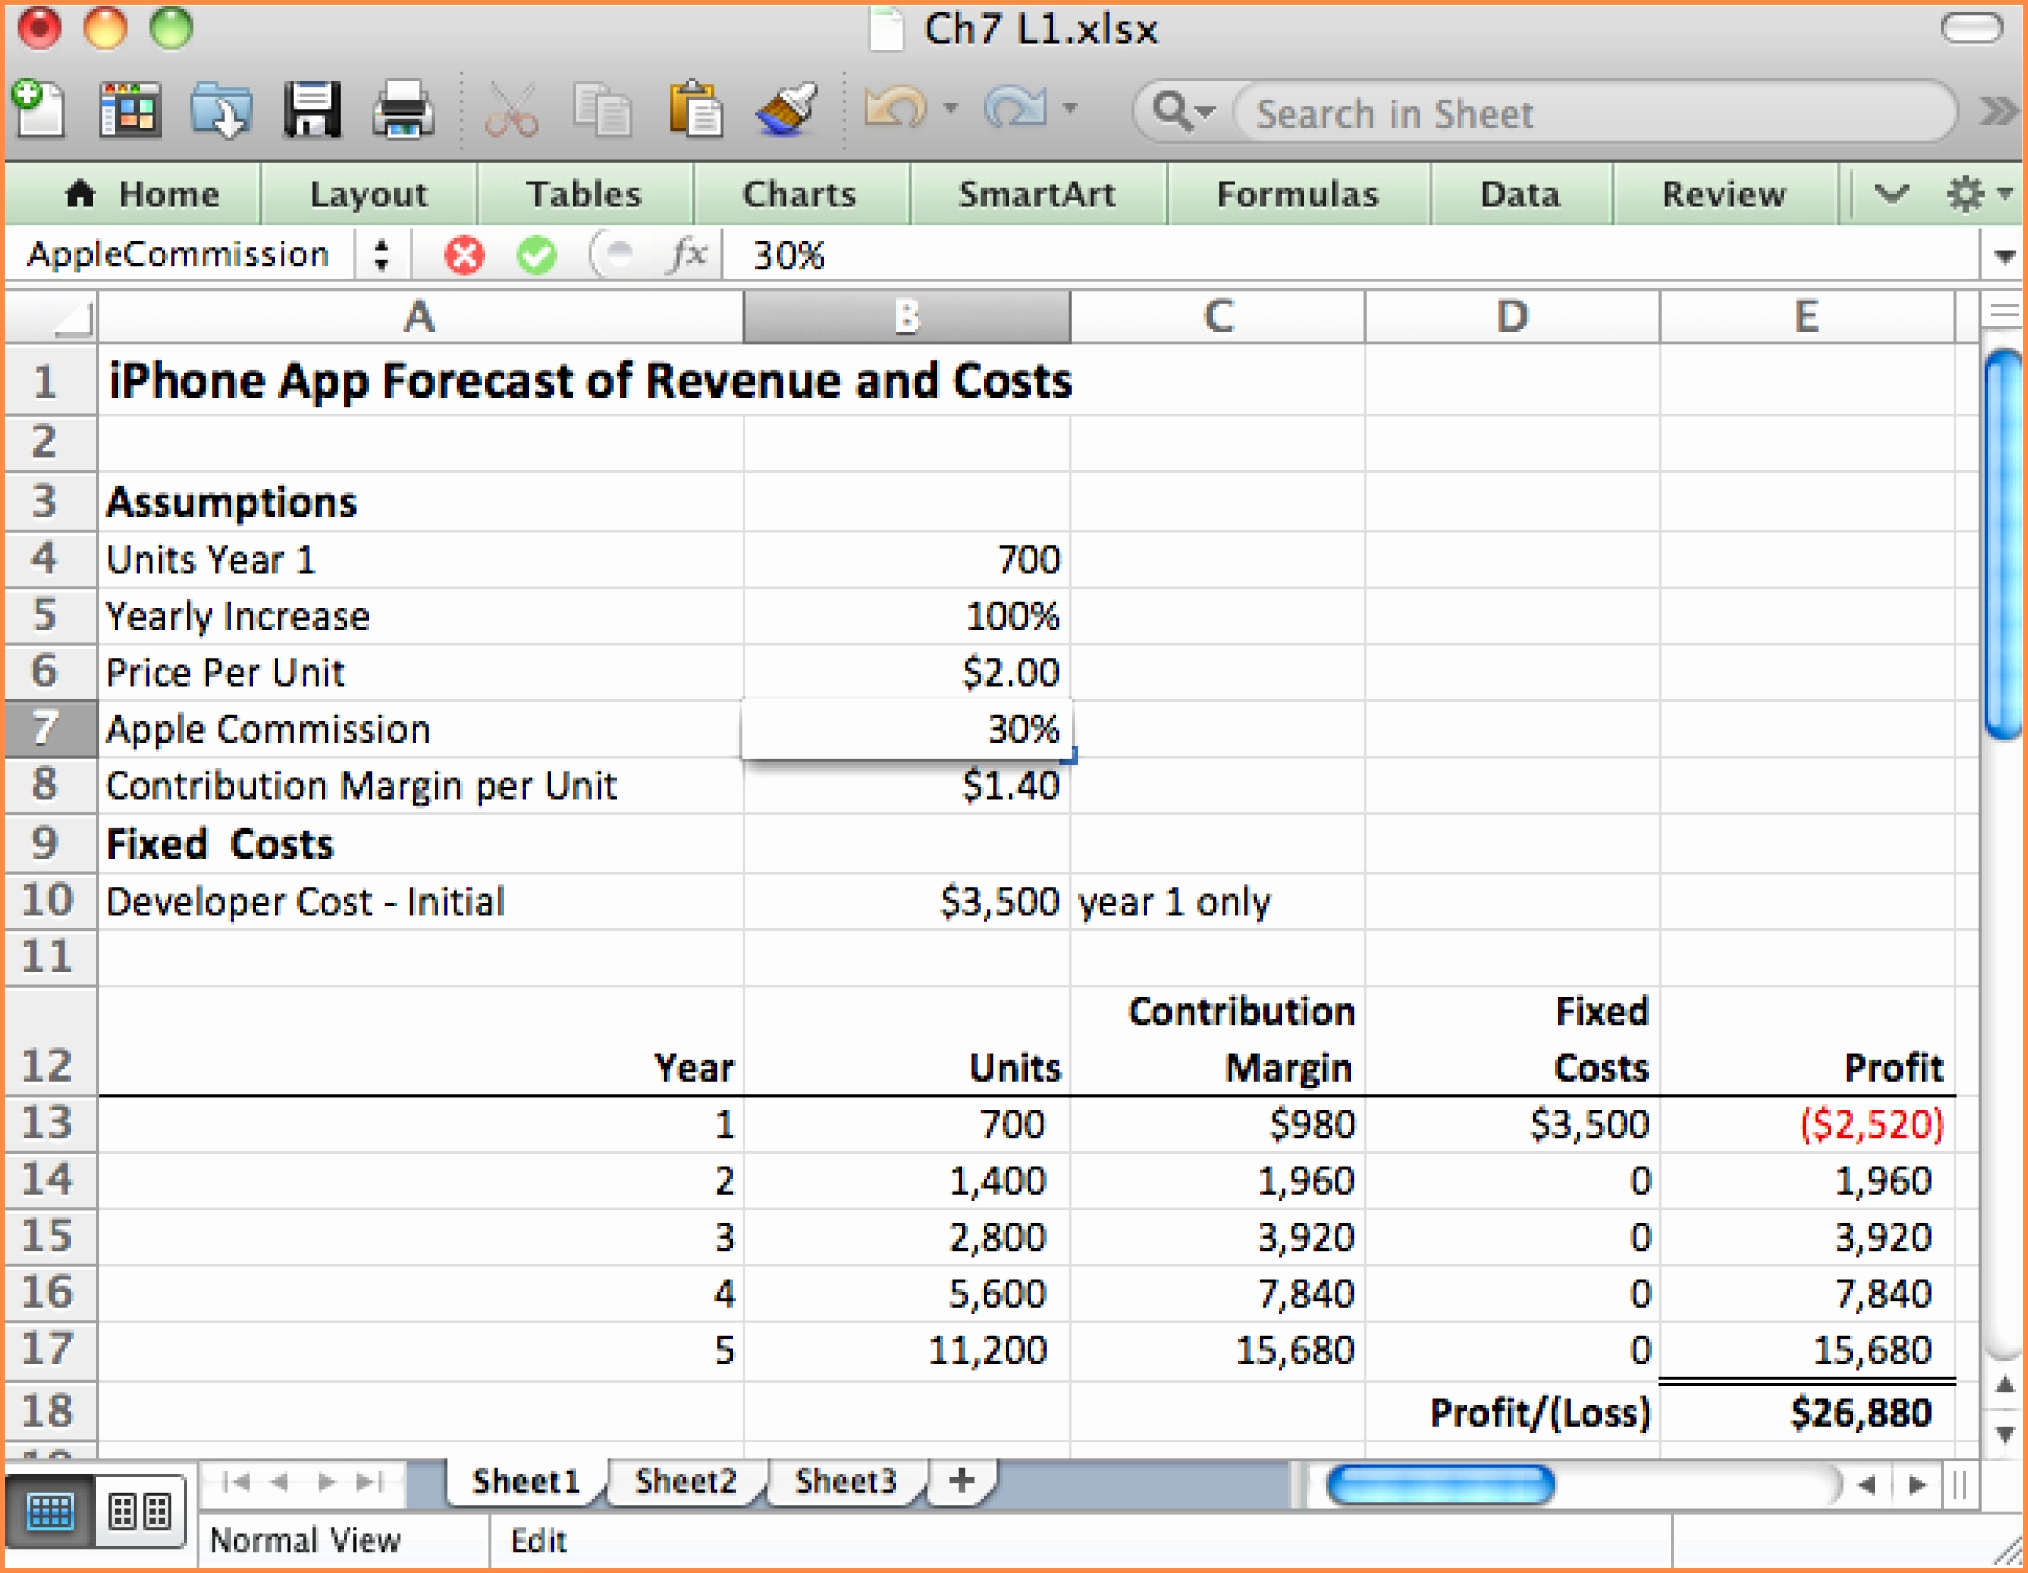 Bookkeeping Spreadsheet Using Microsoft Excel Awesome Book Keeping For Bookkeeping Spreadsheet Using Microsoft Excel